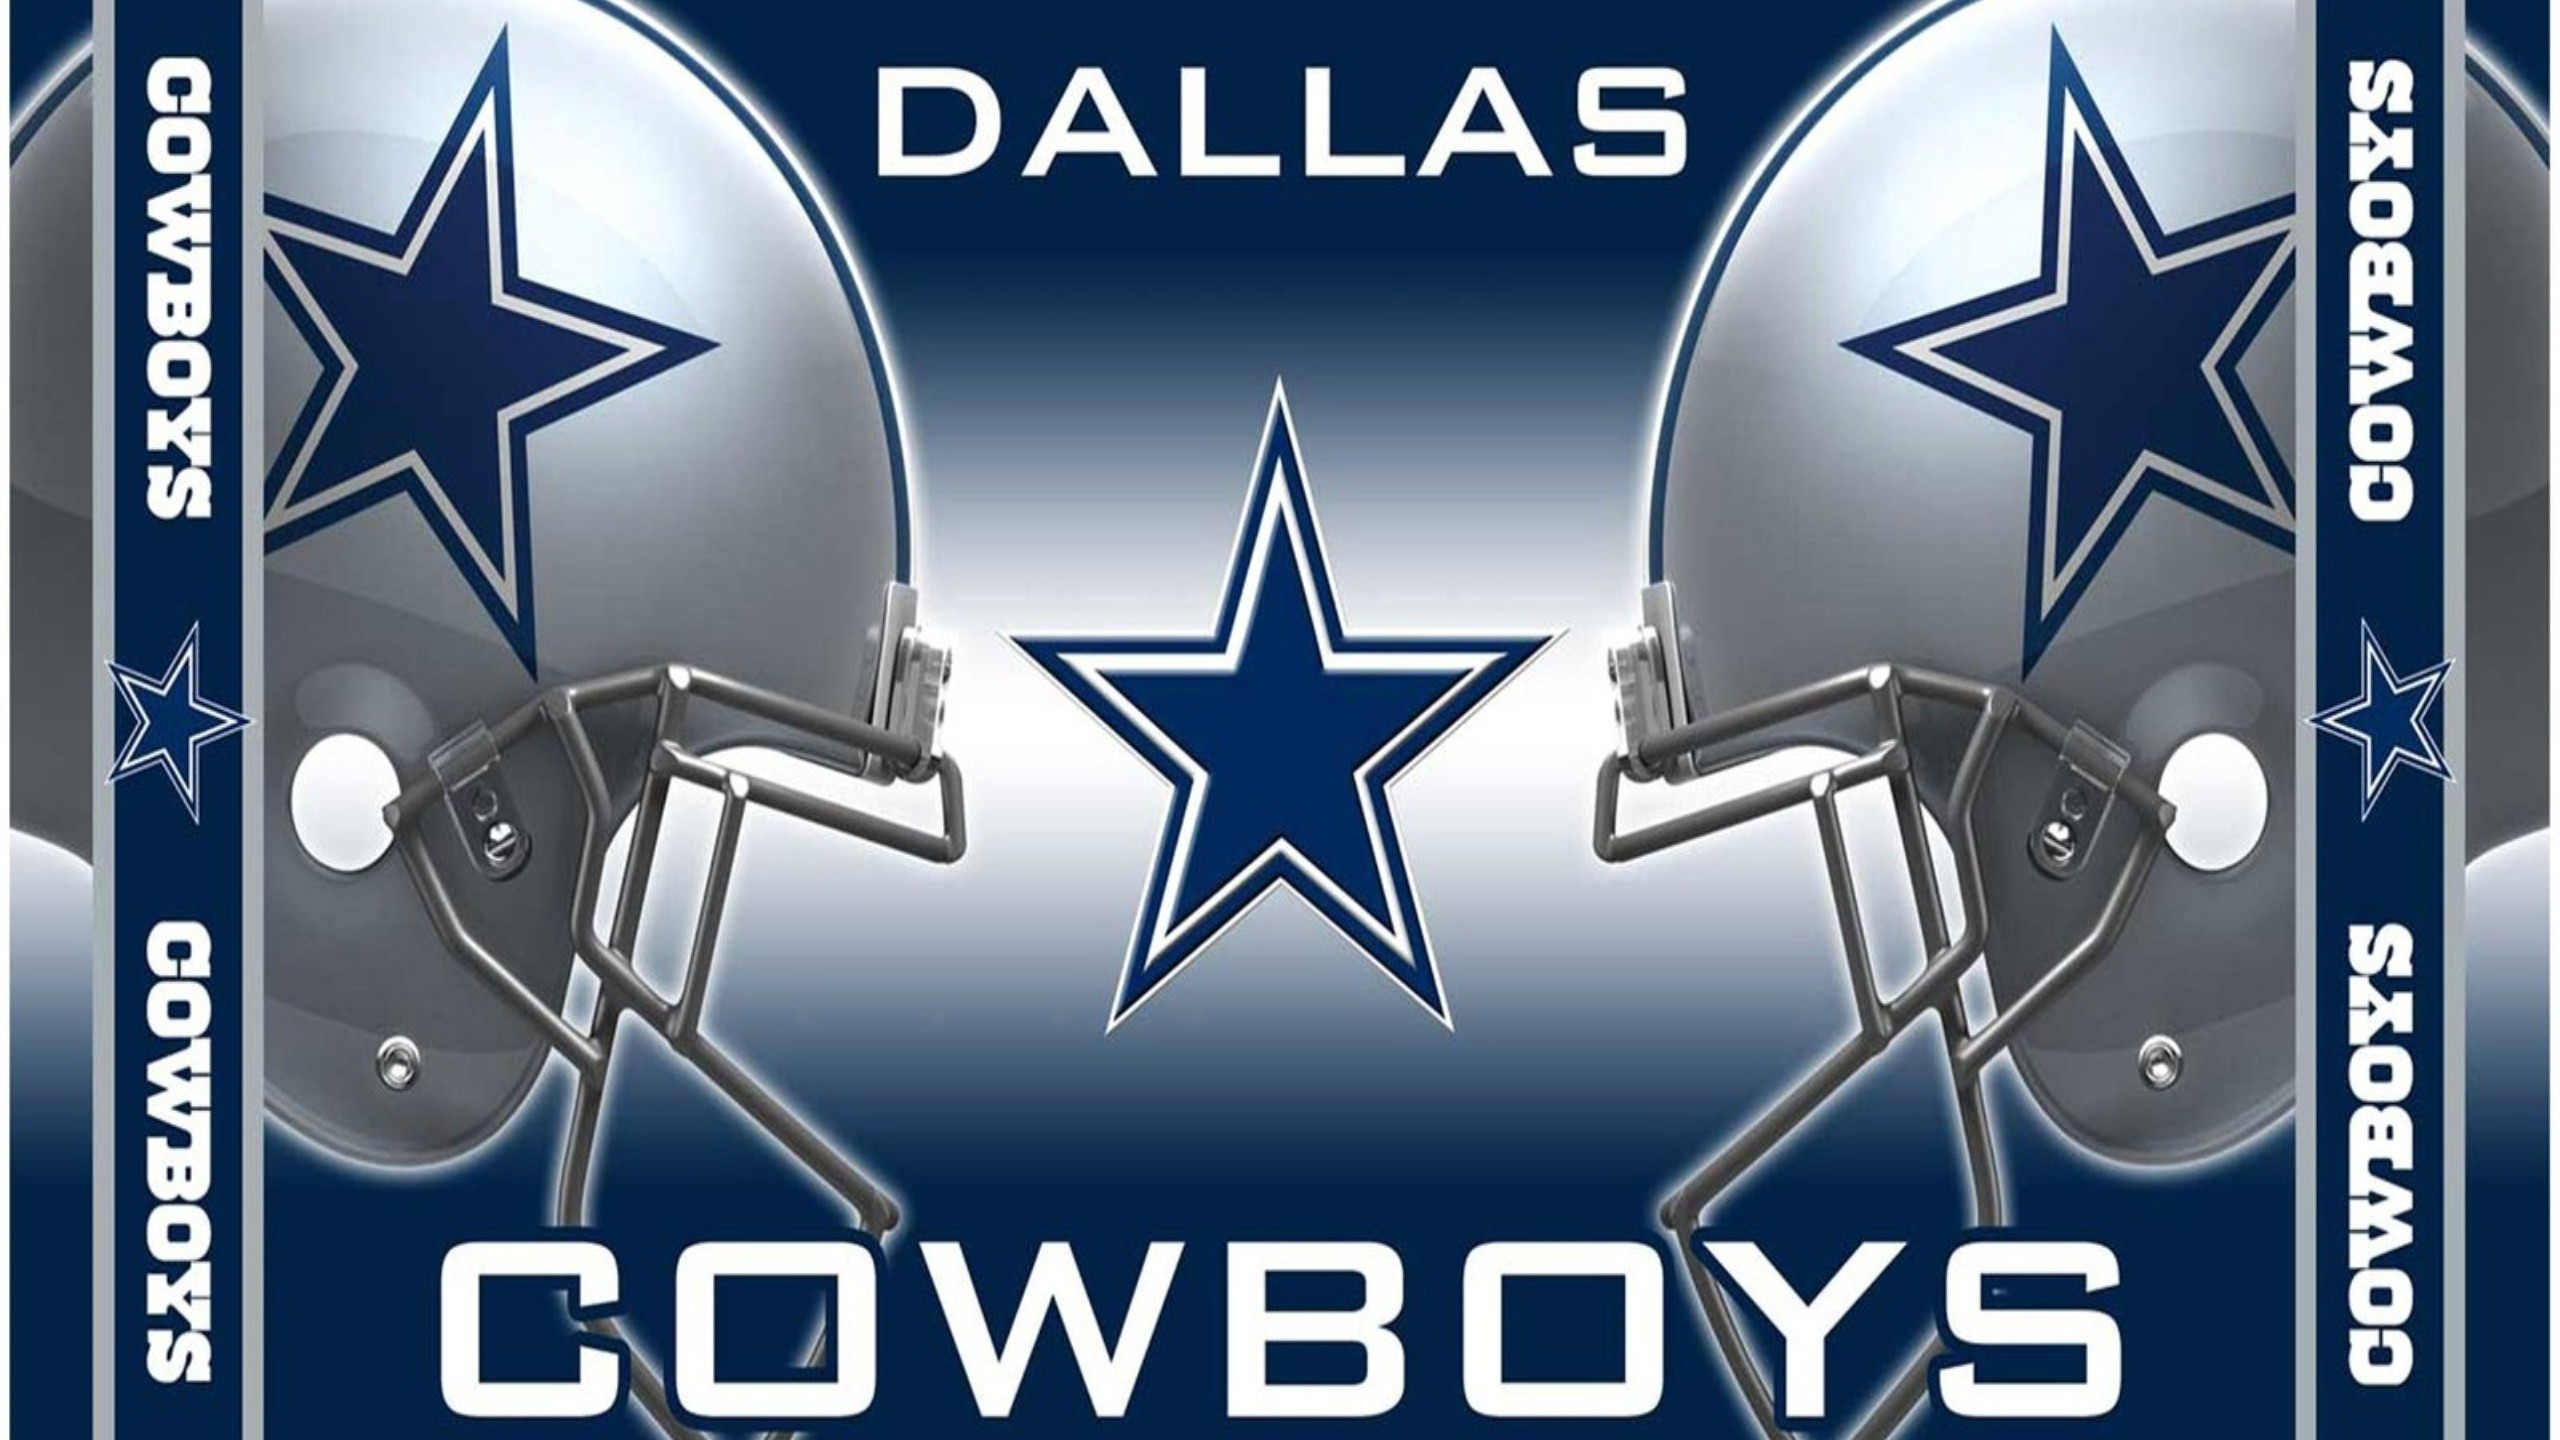 2560x1440 Wallpaper Cowboys Free wallpaper download 2560×1440 Dallas Cowboys Helmet  Wallpapers (38 Wallpapers)